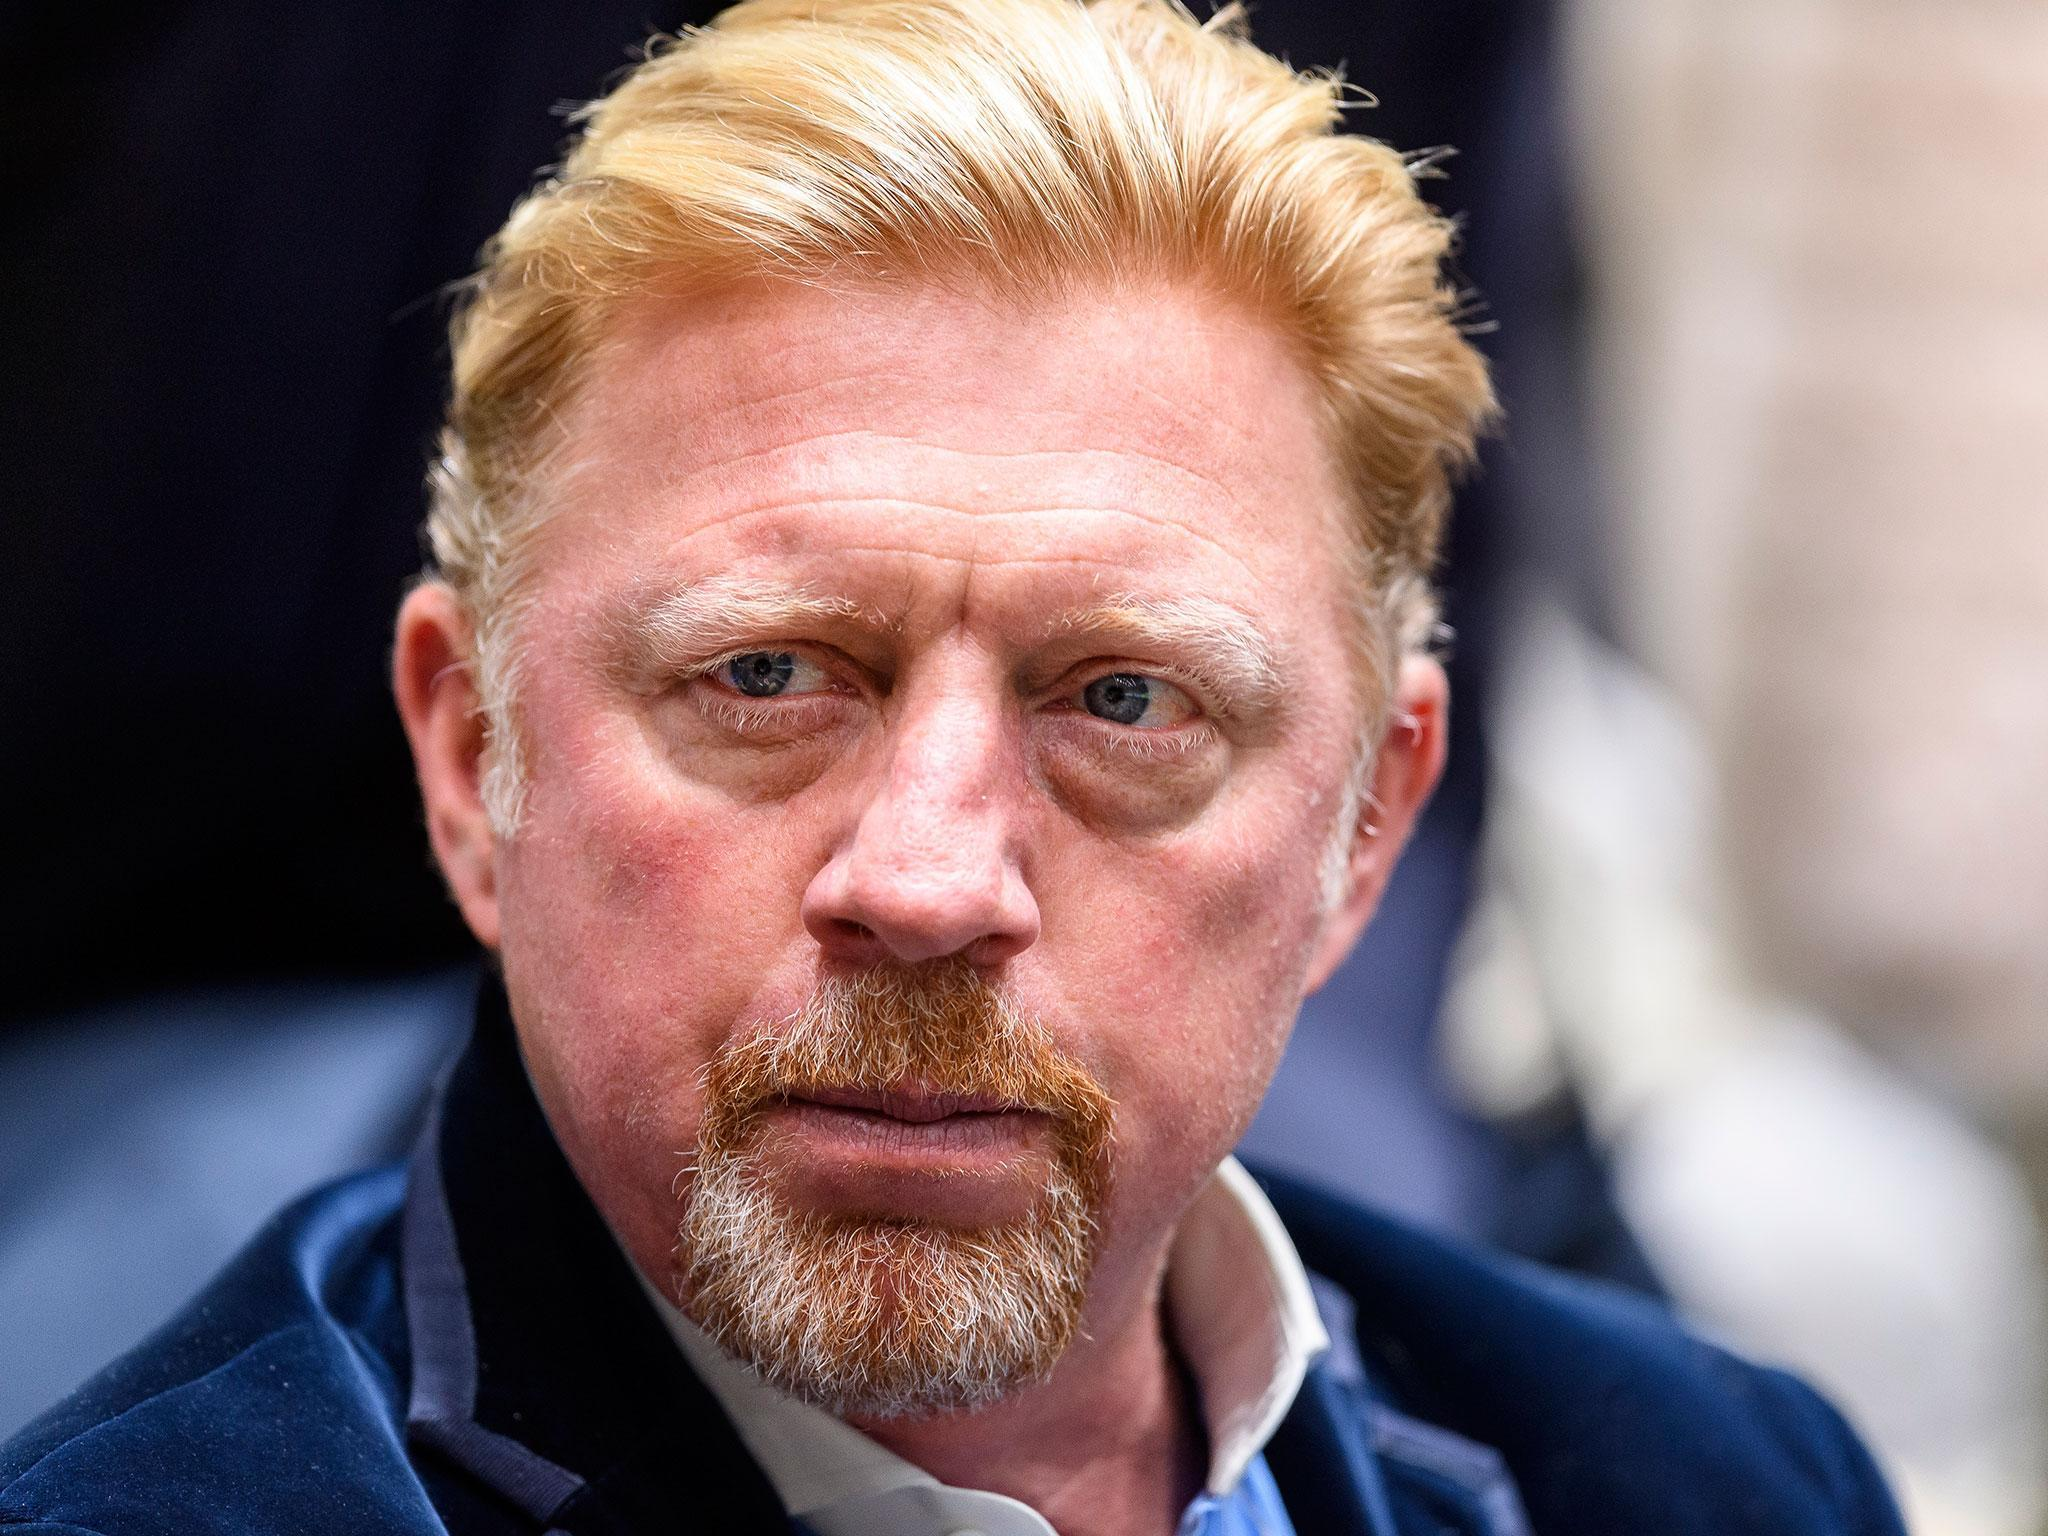 Boris Becker condemned as a man with his head in the sand after